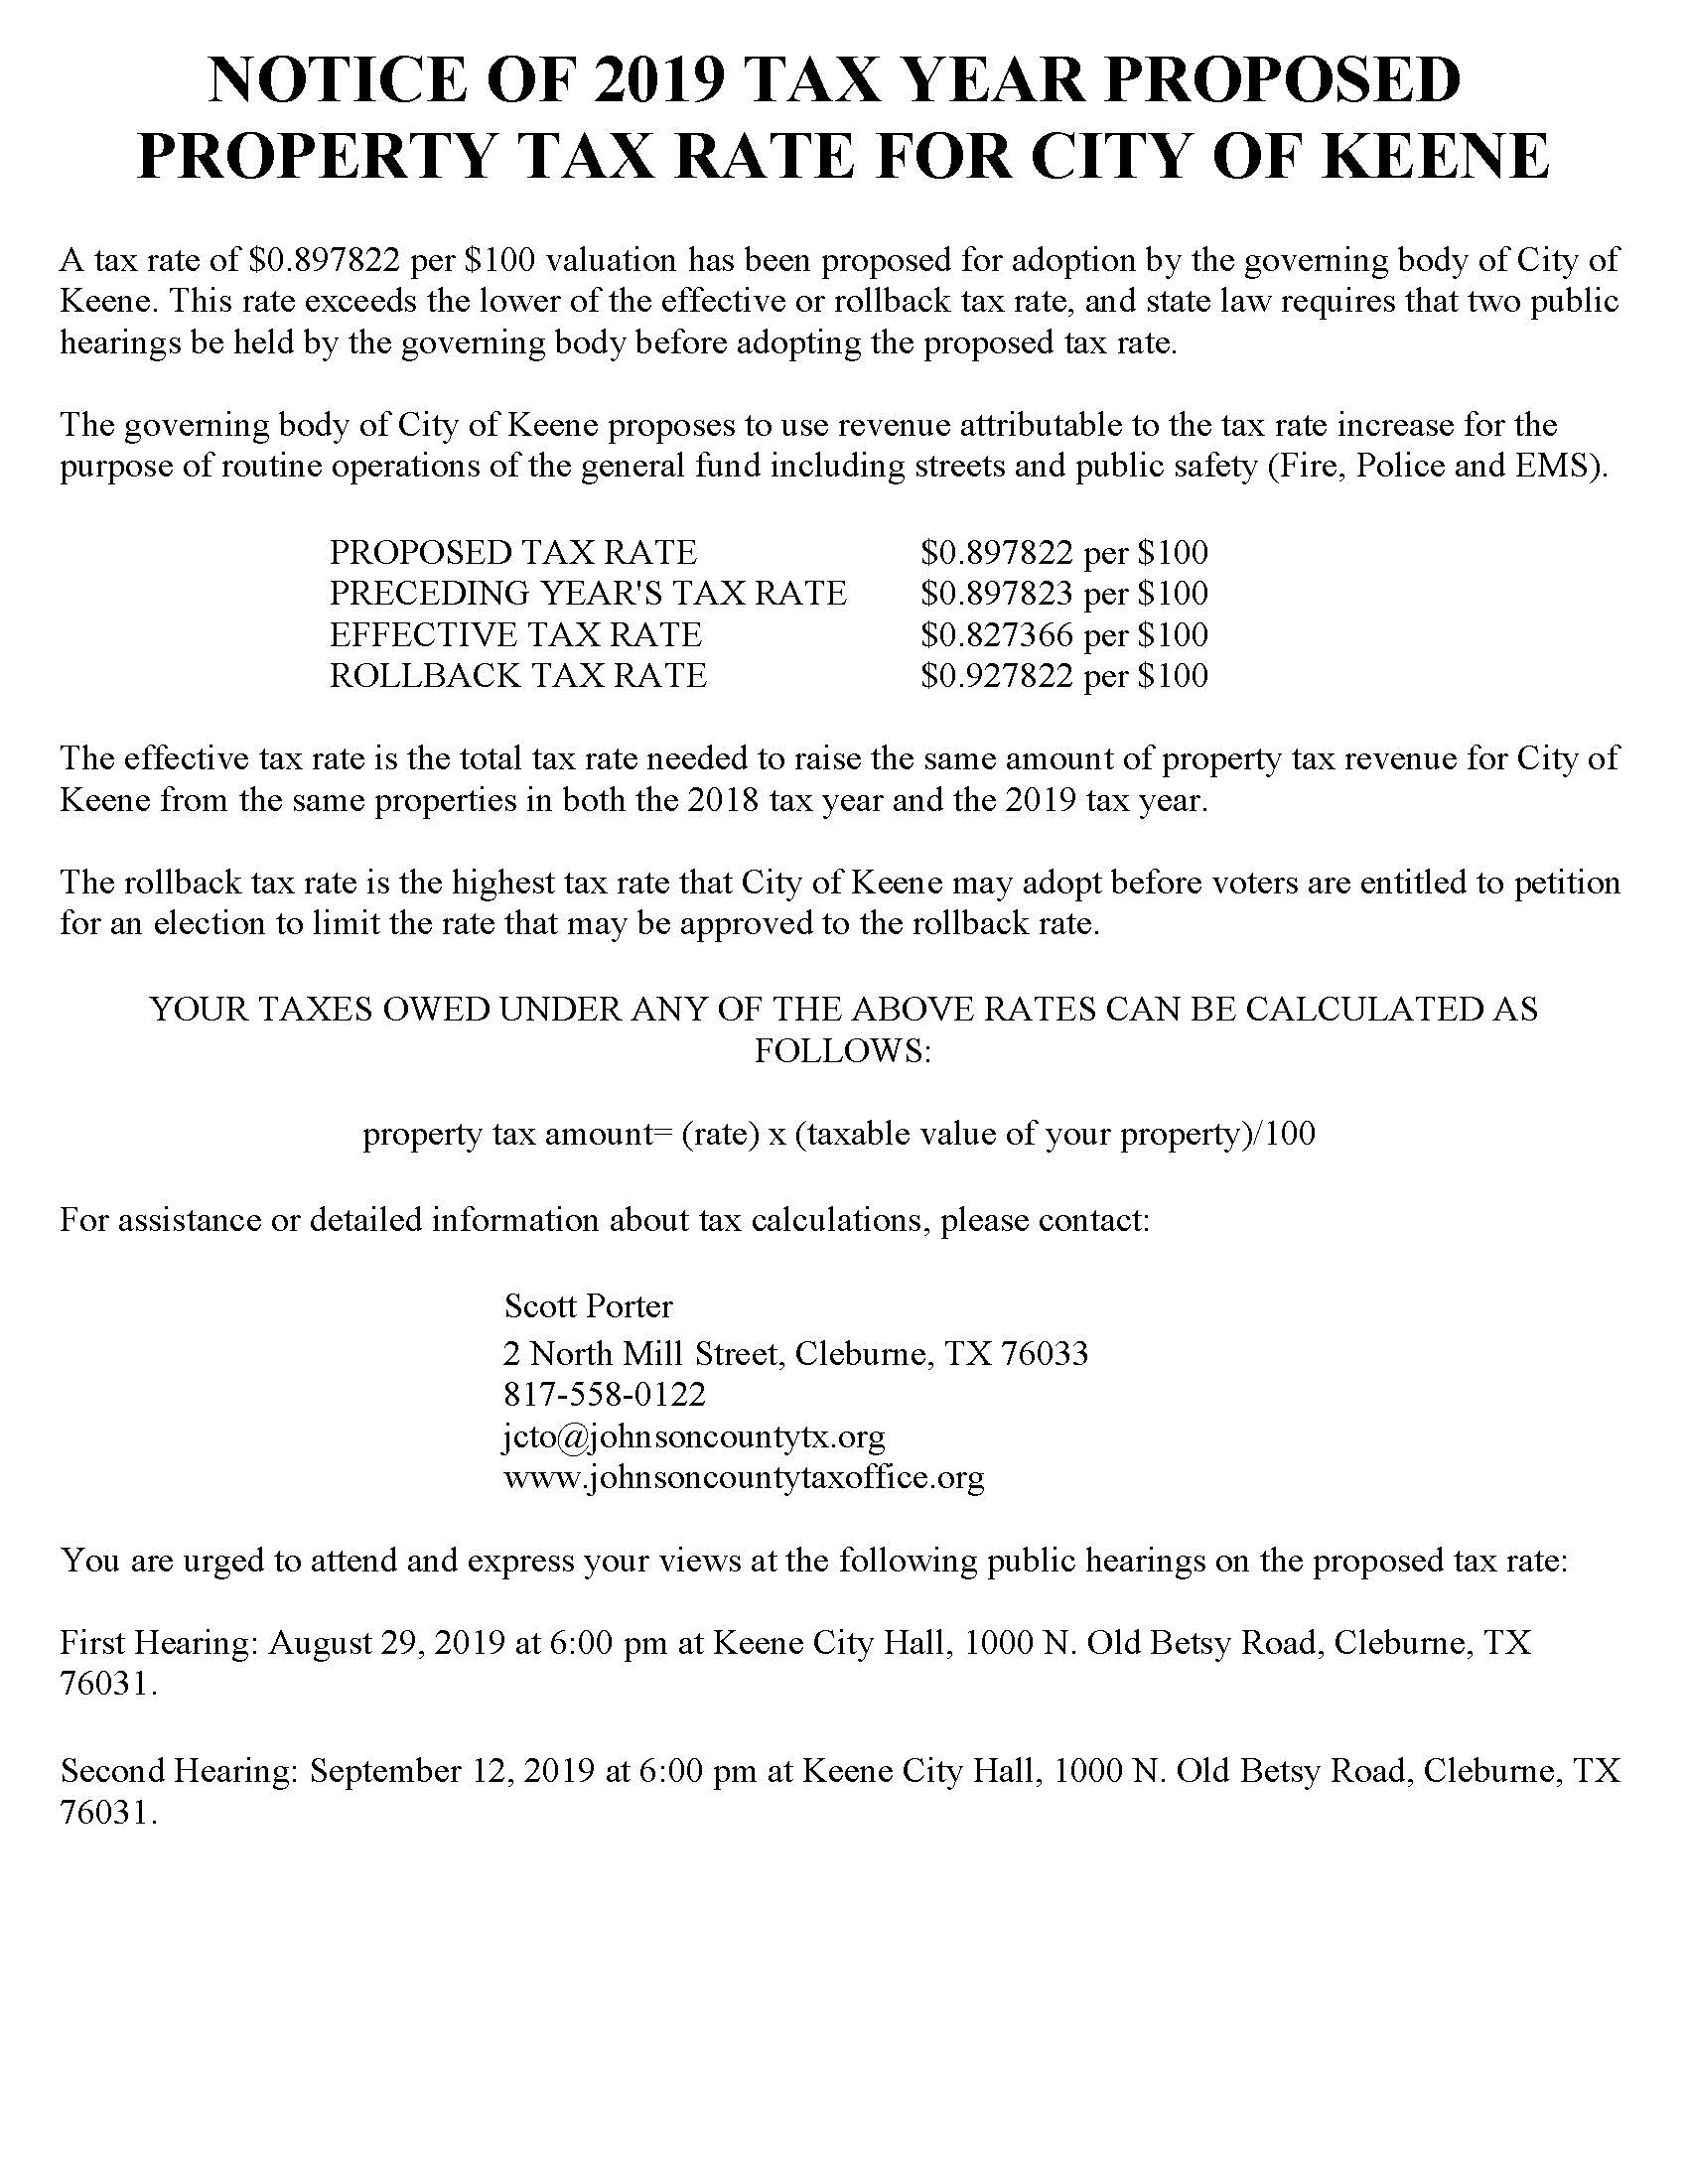 Notice of 2019 Tax Year Proposed Property Tax Rate for City of Keene